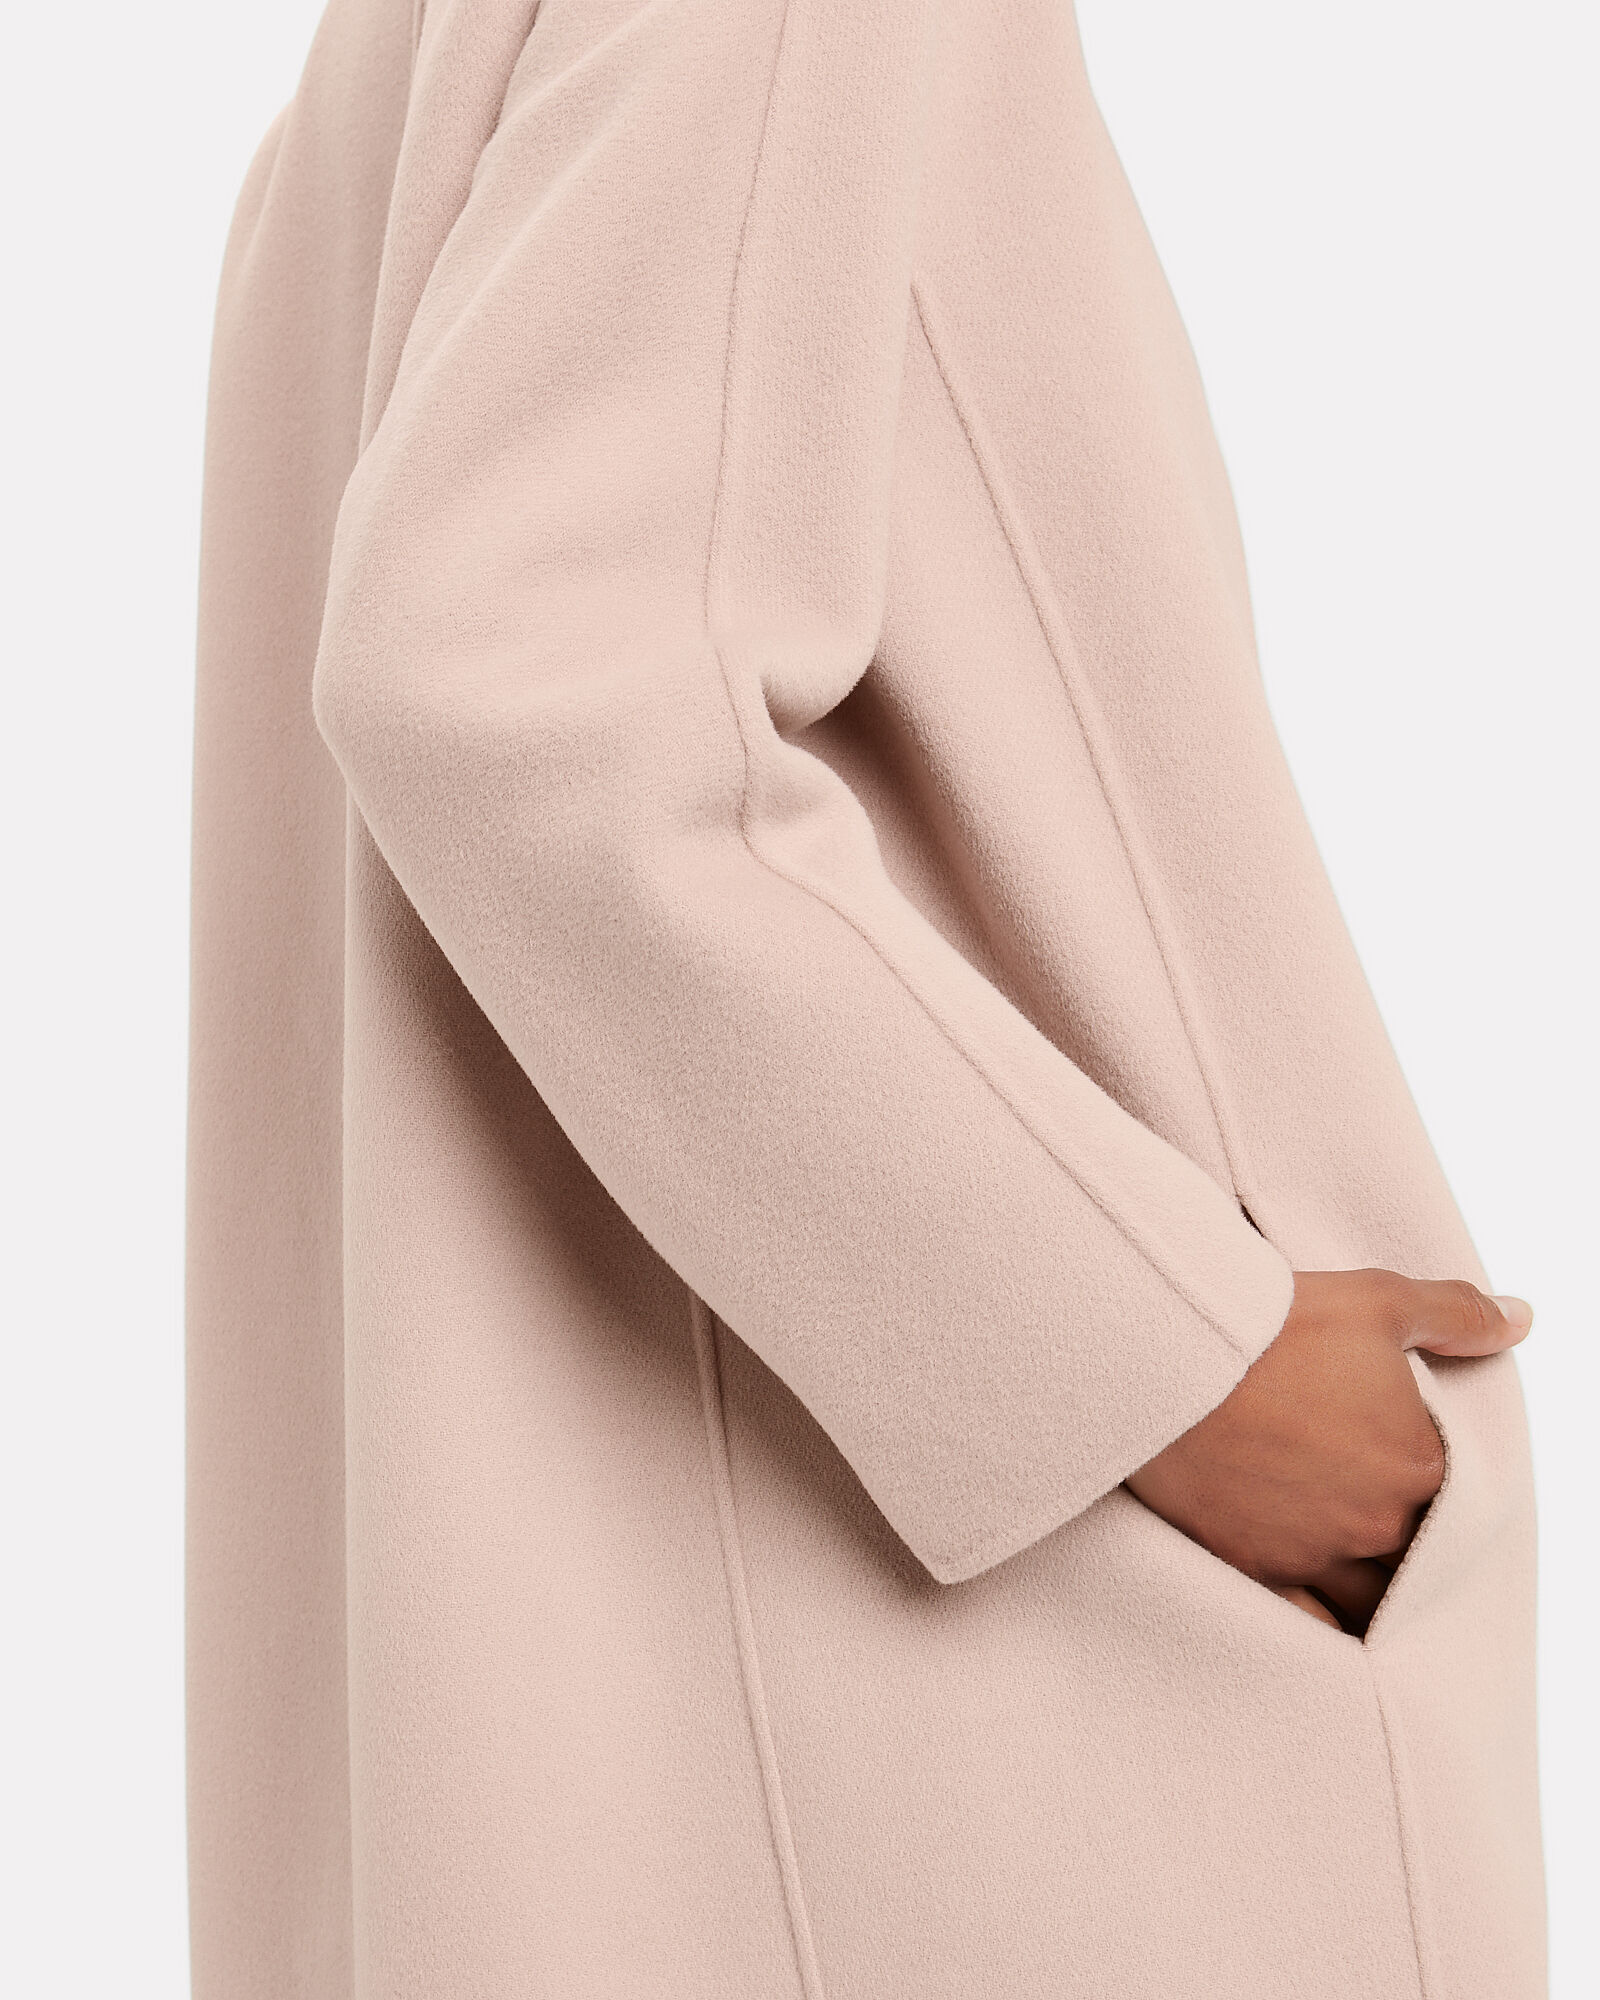 Doraci Belted Wool Coat, BLUSH, hi-res